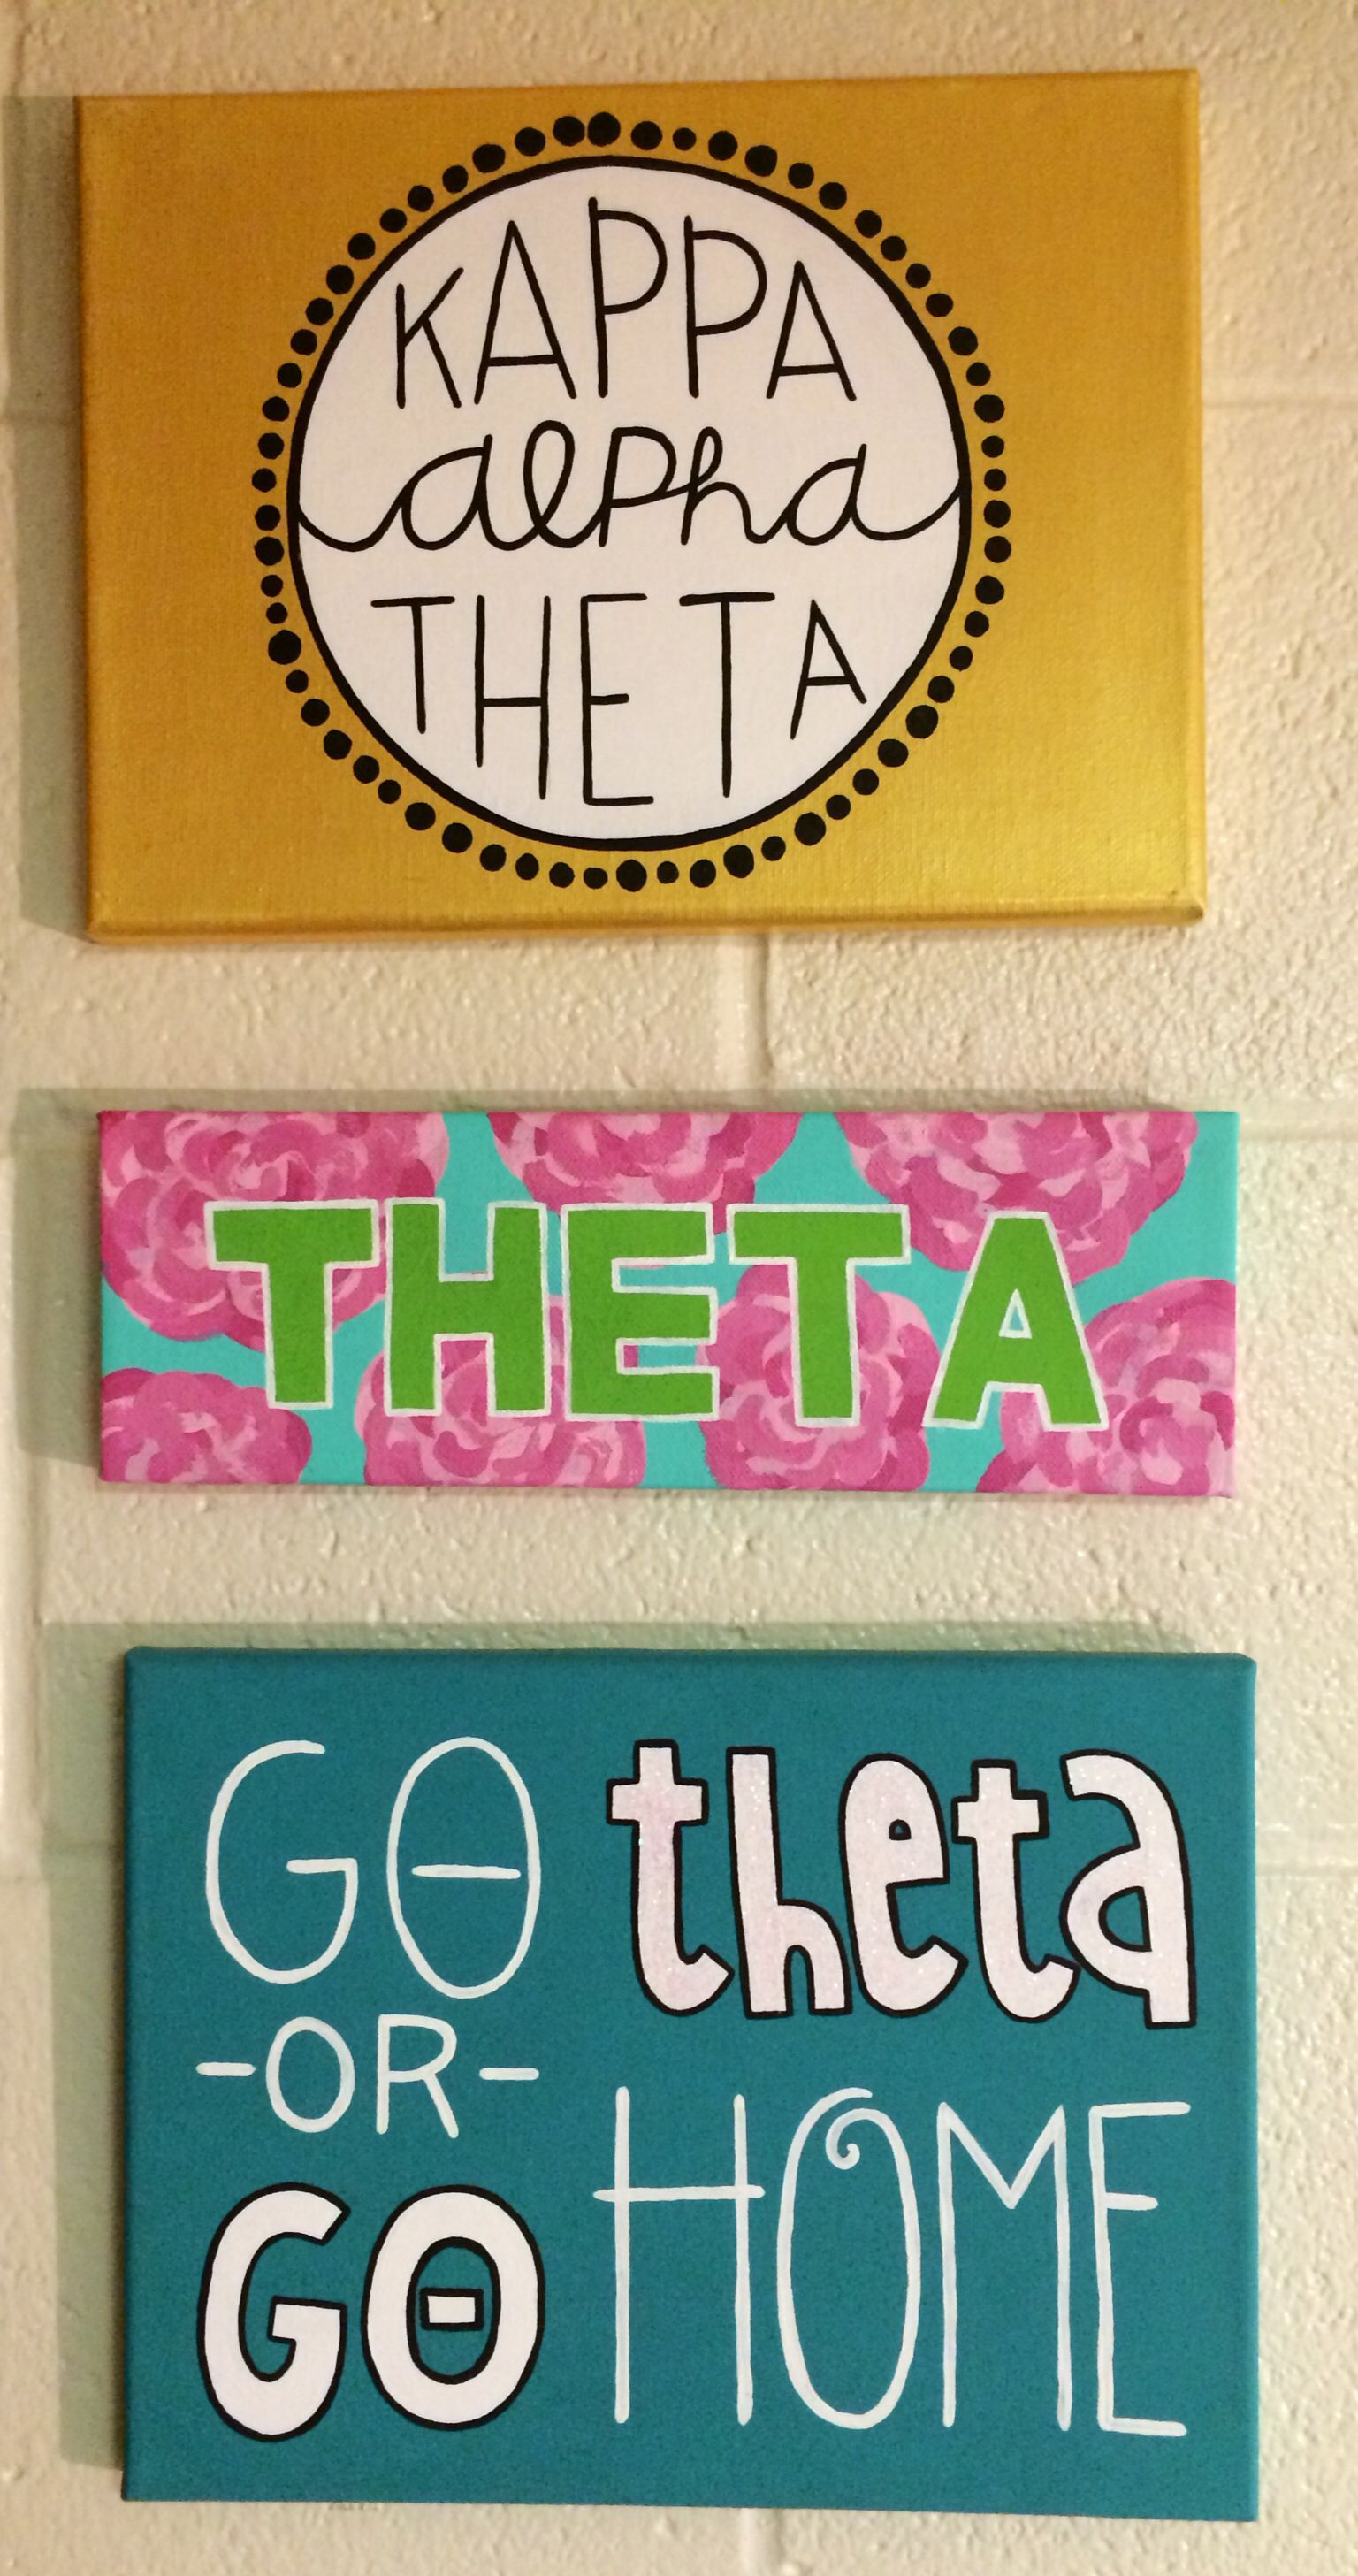 Kappa alpha theta canvases Big little sorority crafts ΚΑΘ #biglittlecanvas